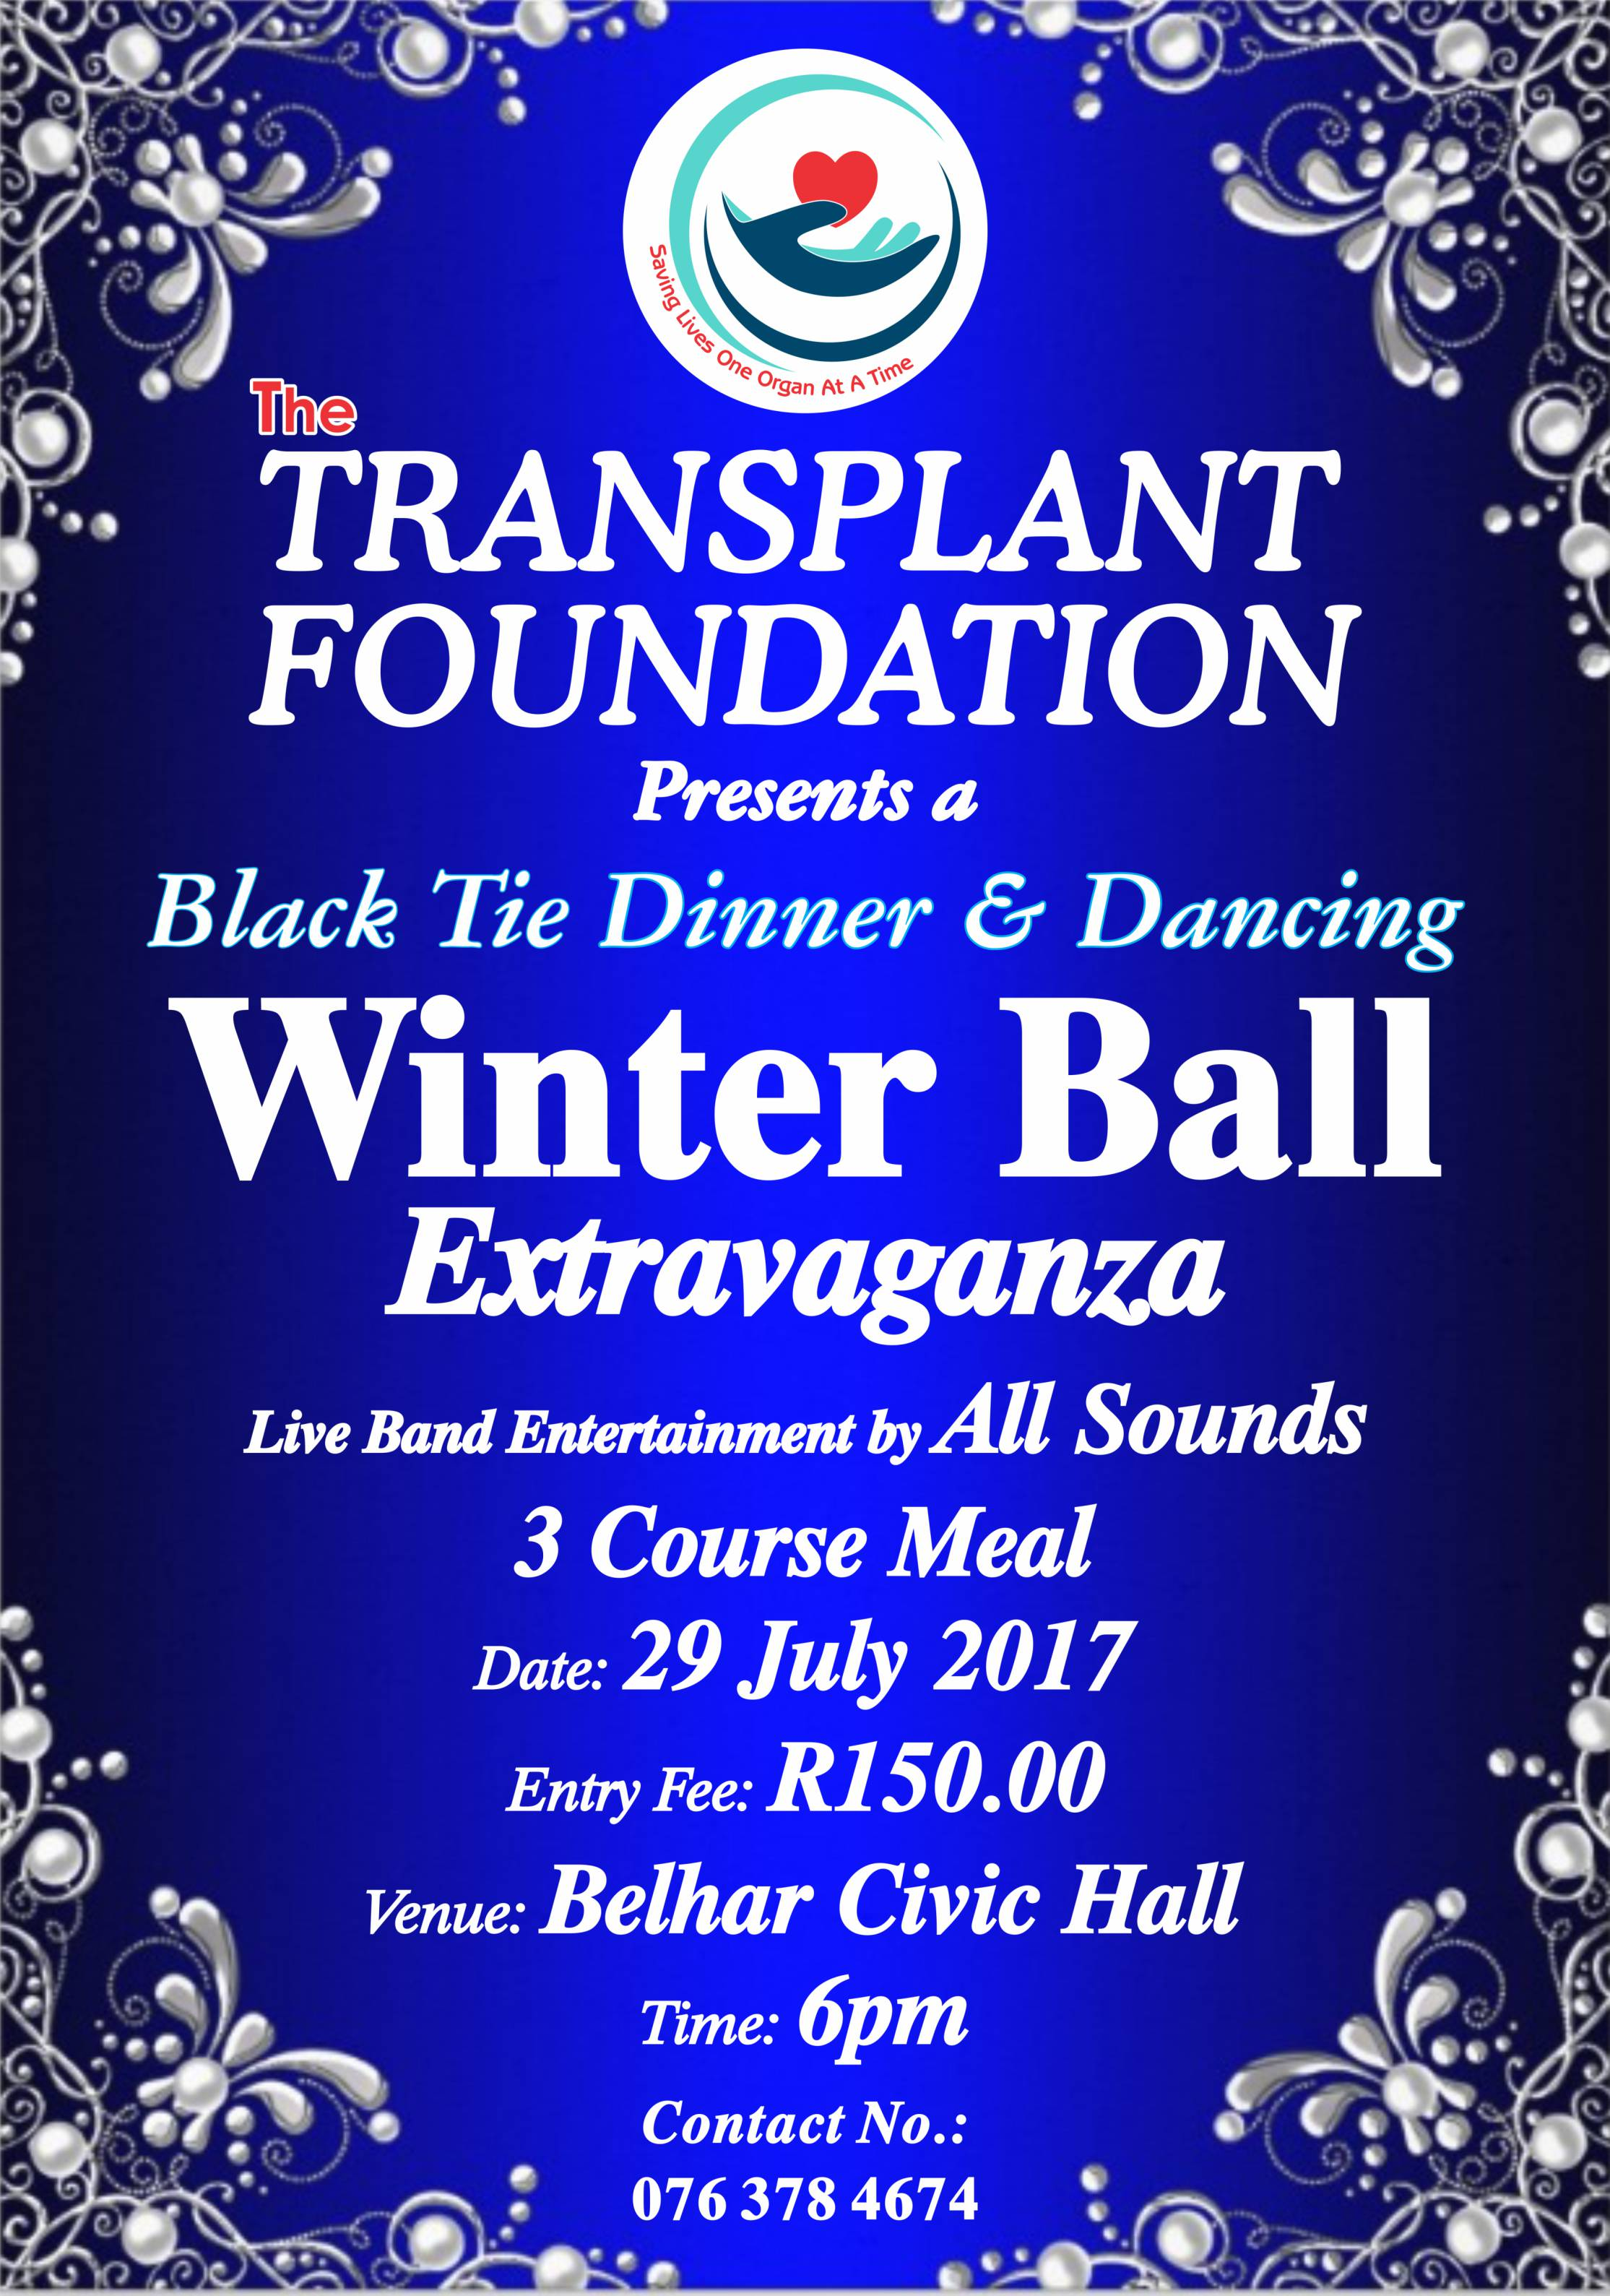 The Transplant Foundation Winter Ball